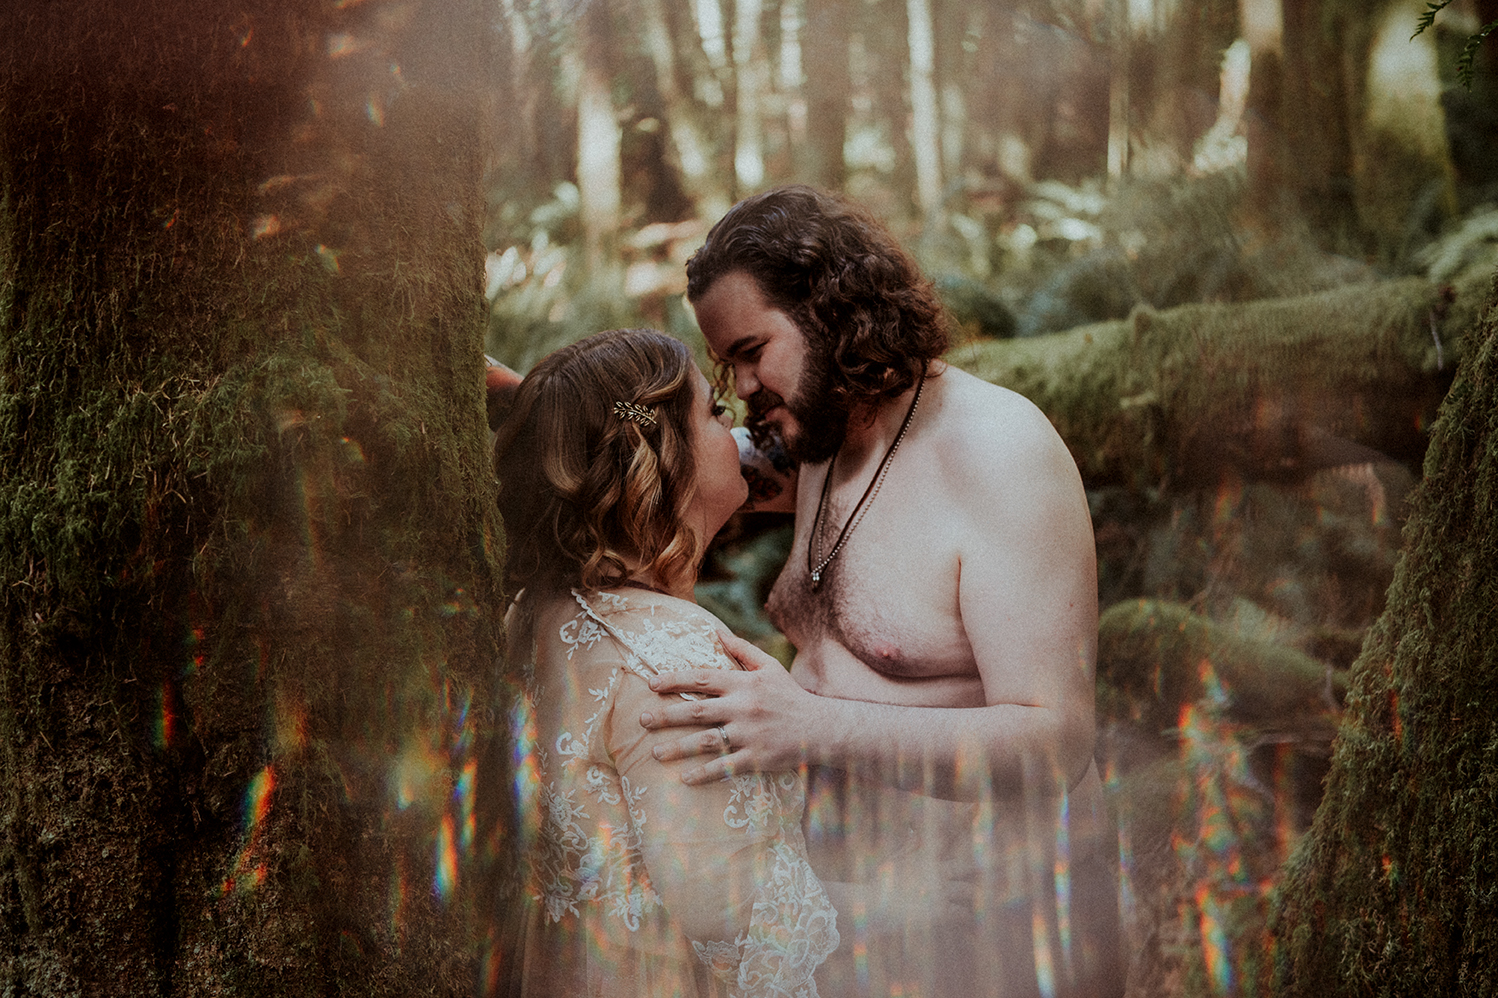 Vancouver-Island-Couples-Boudoir-Moss-Photography-11.jpg